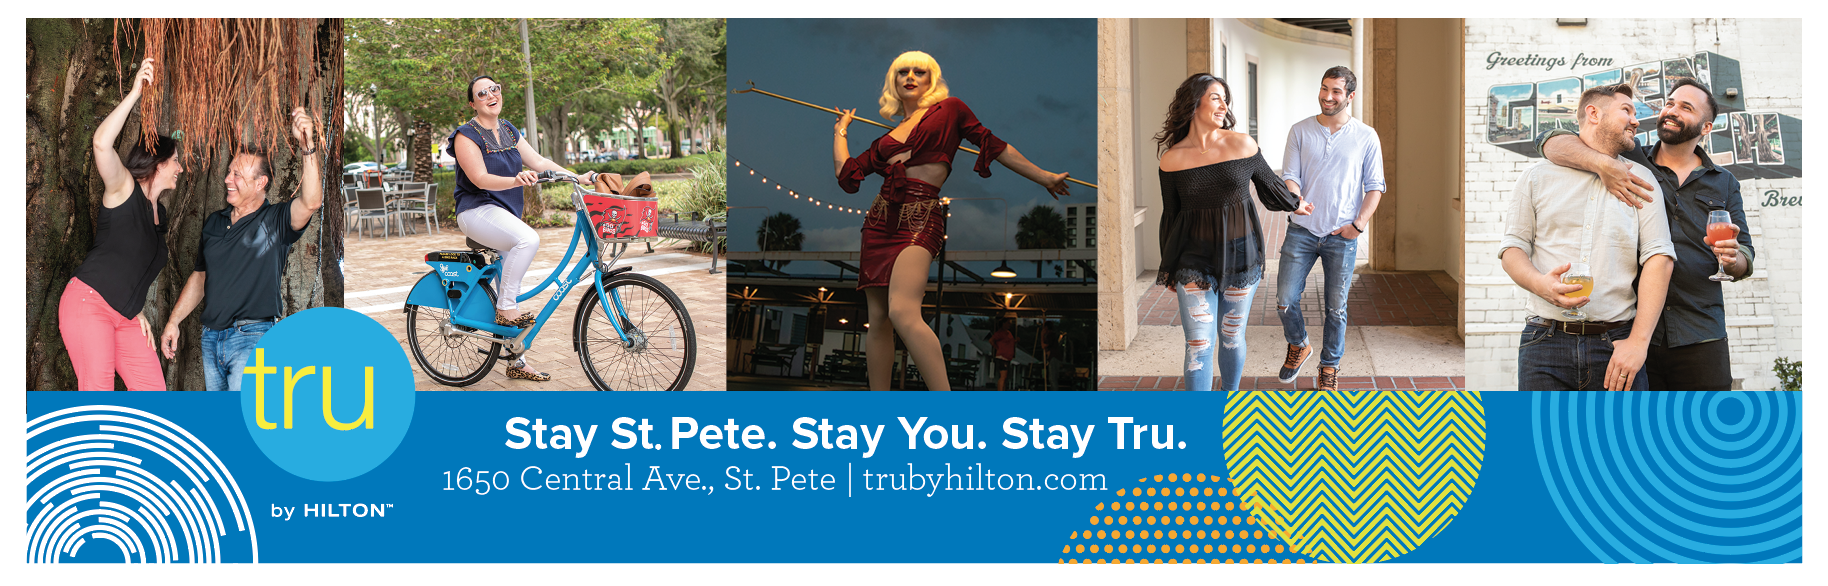 Tru by Hilton St. Pete Downtown Ad.png